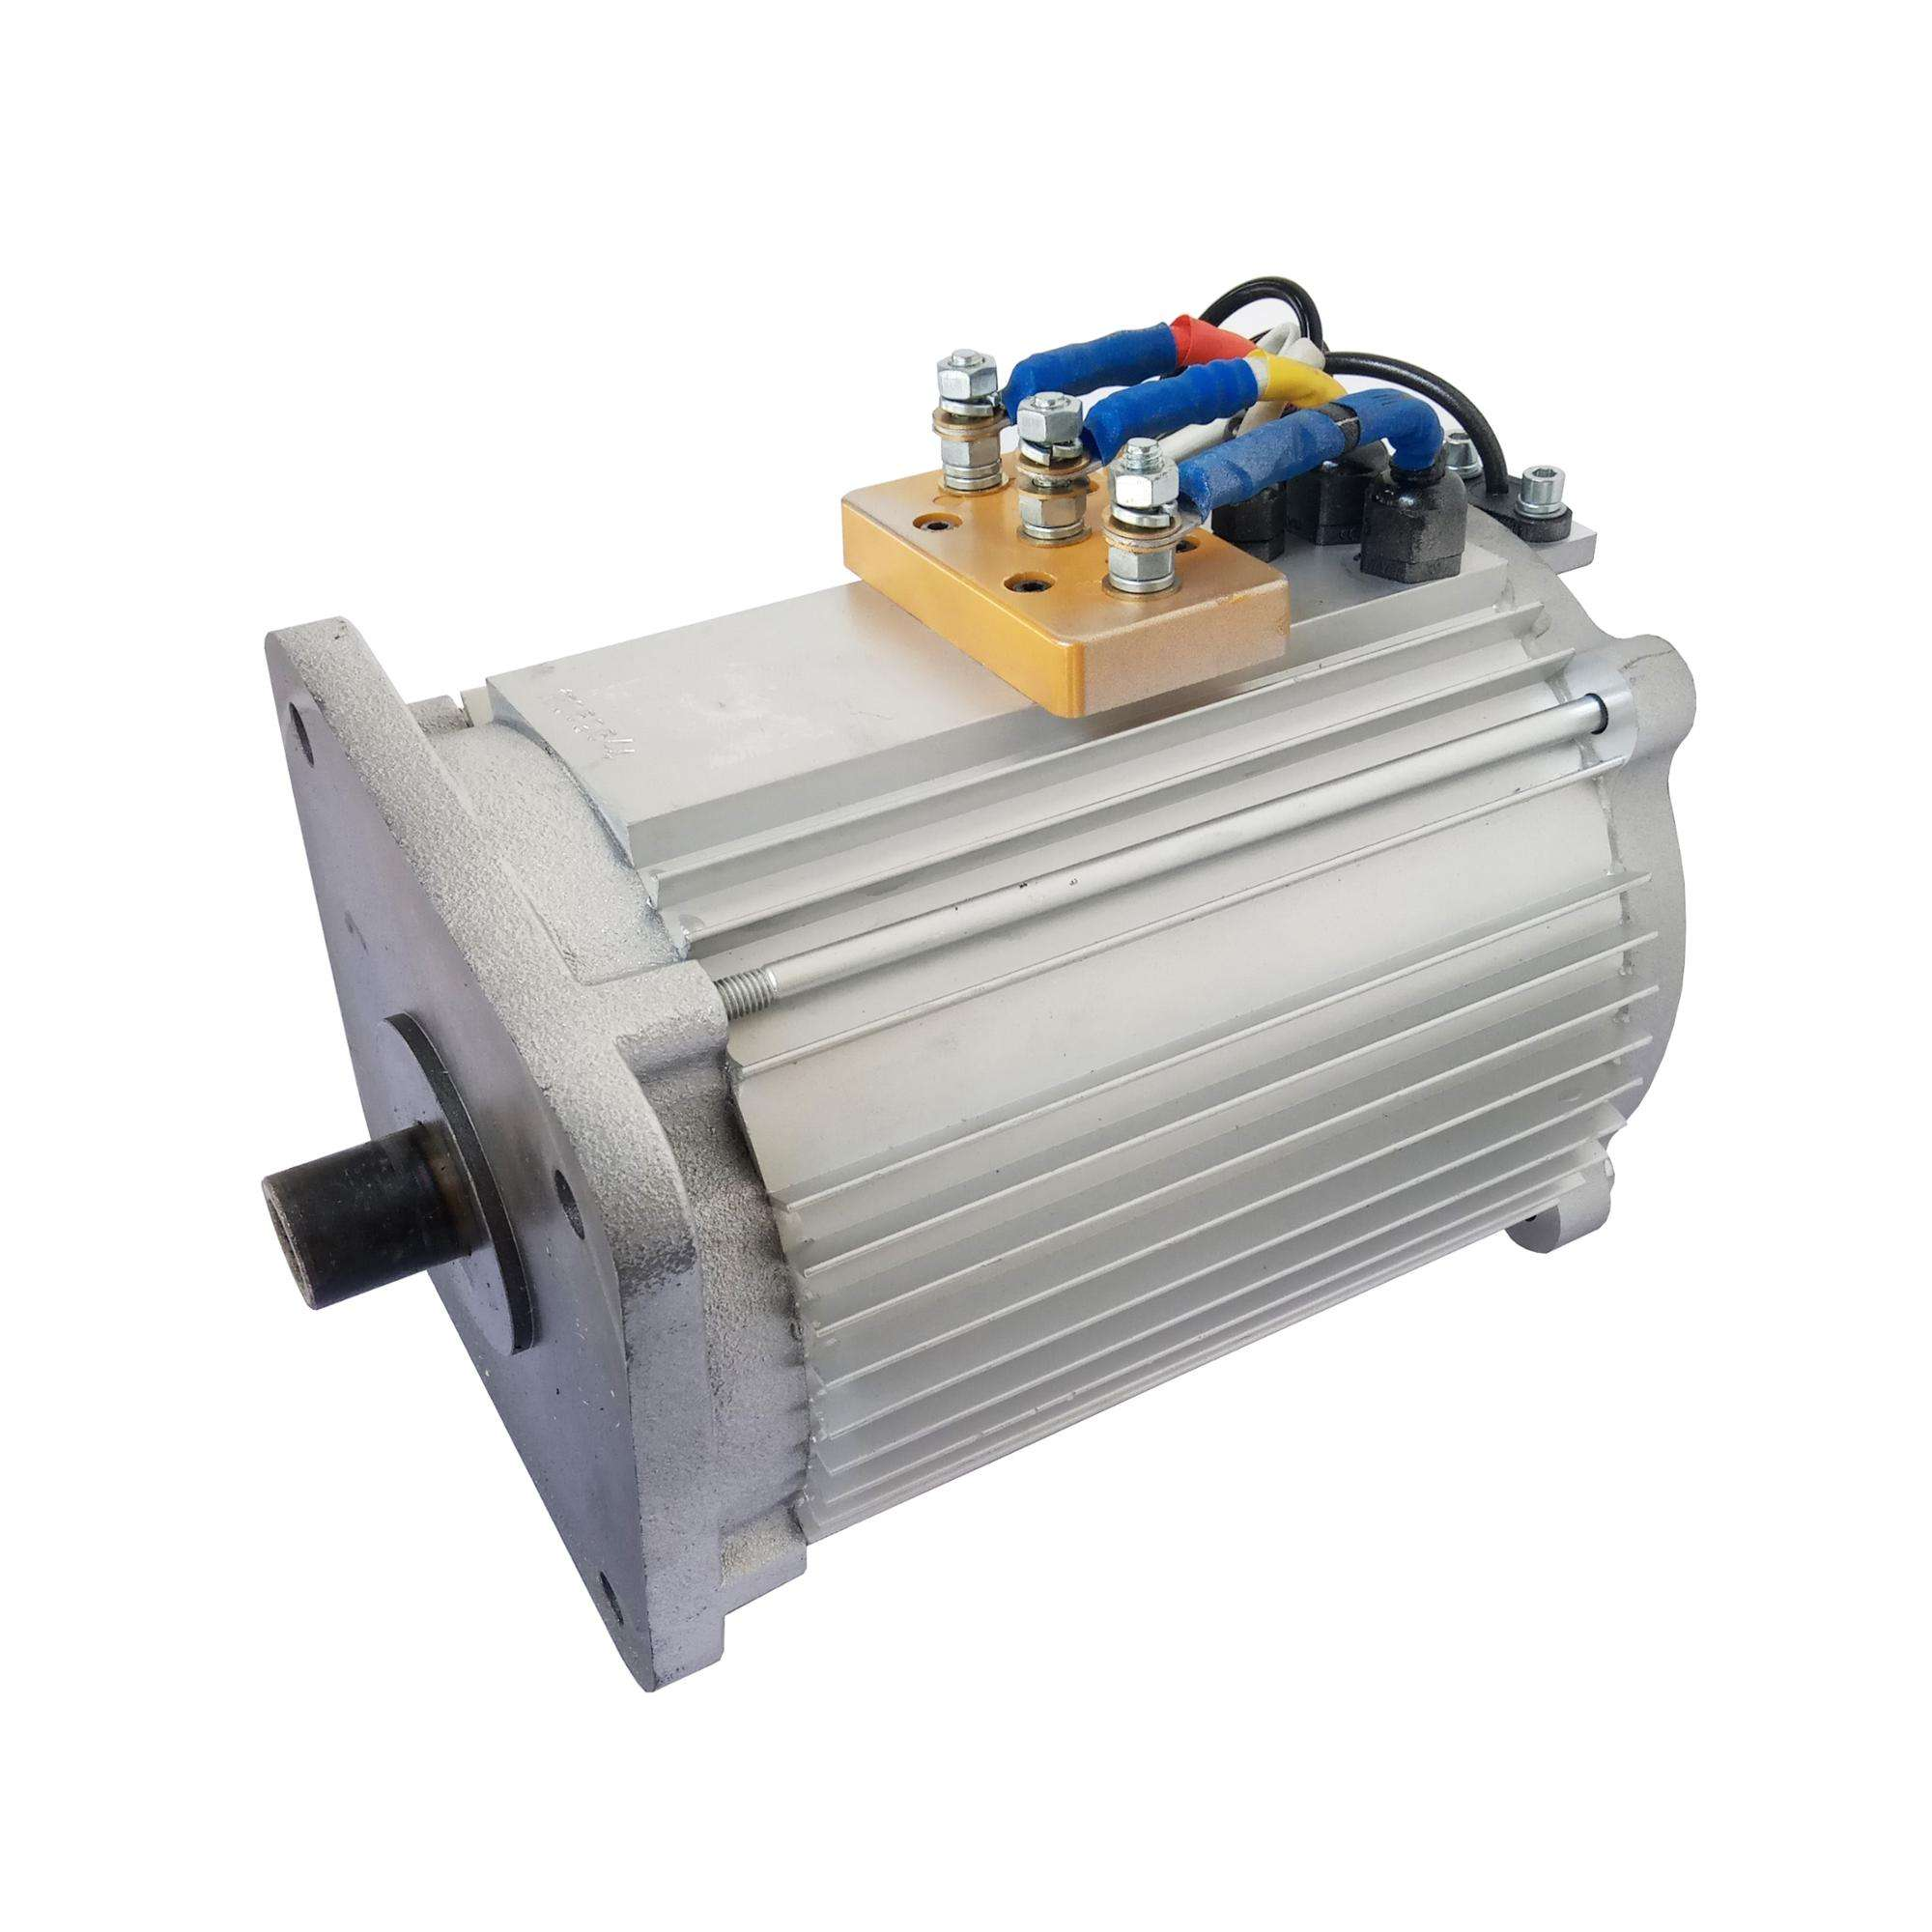 SHINEGLE high efficiency three phase induction motor 96v 15kw engine kit motor controller battery